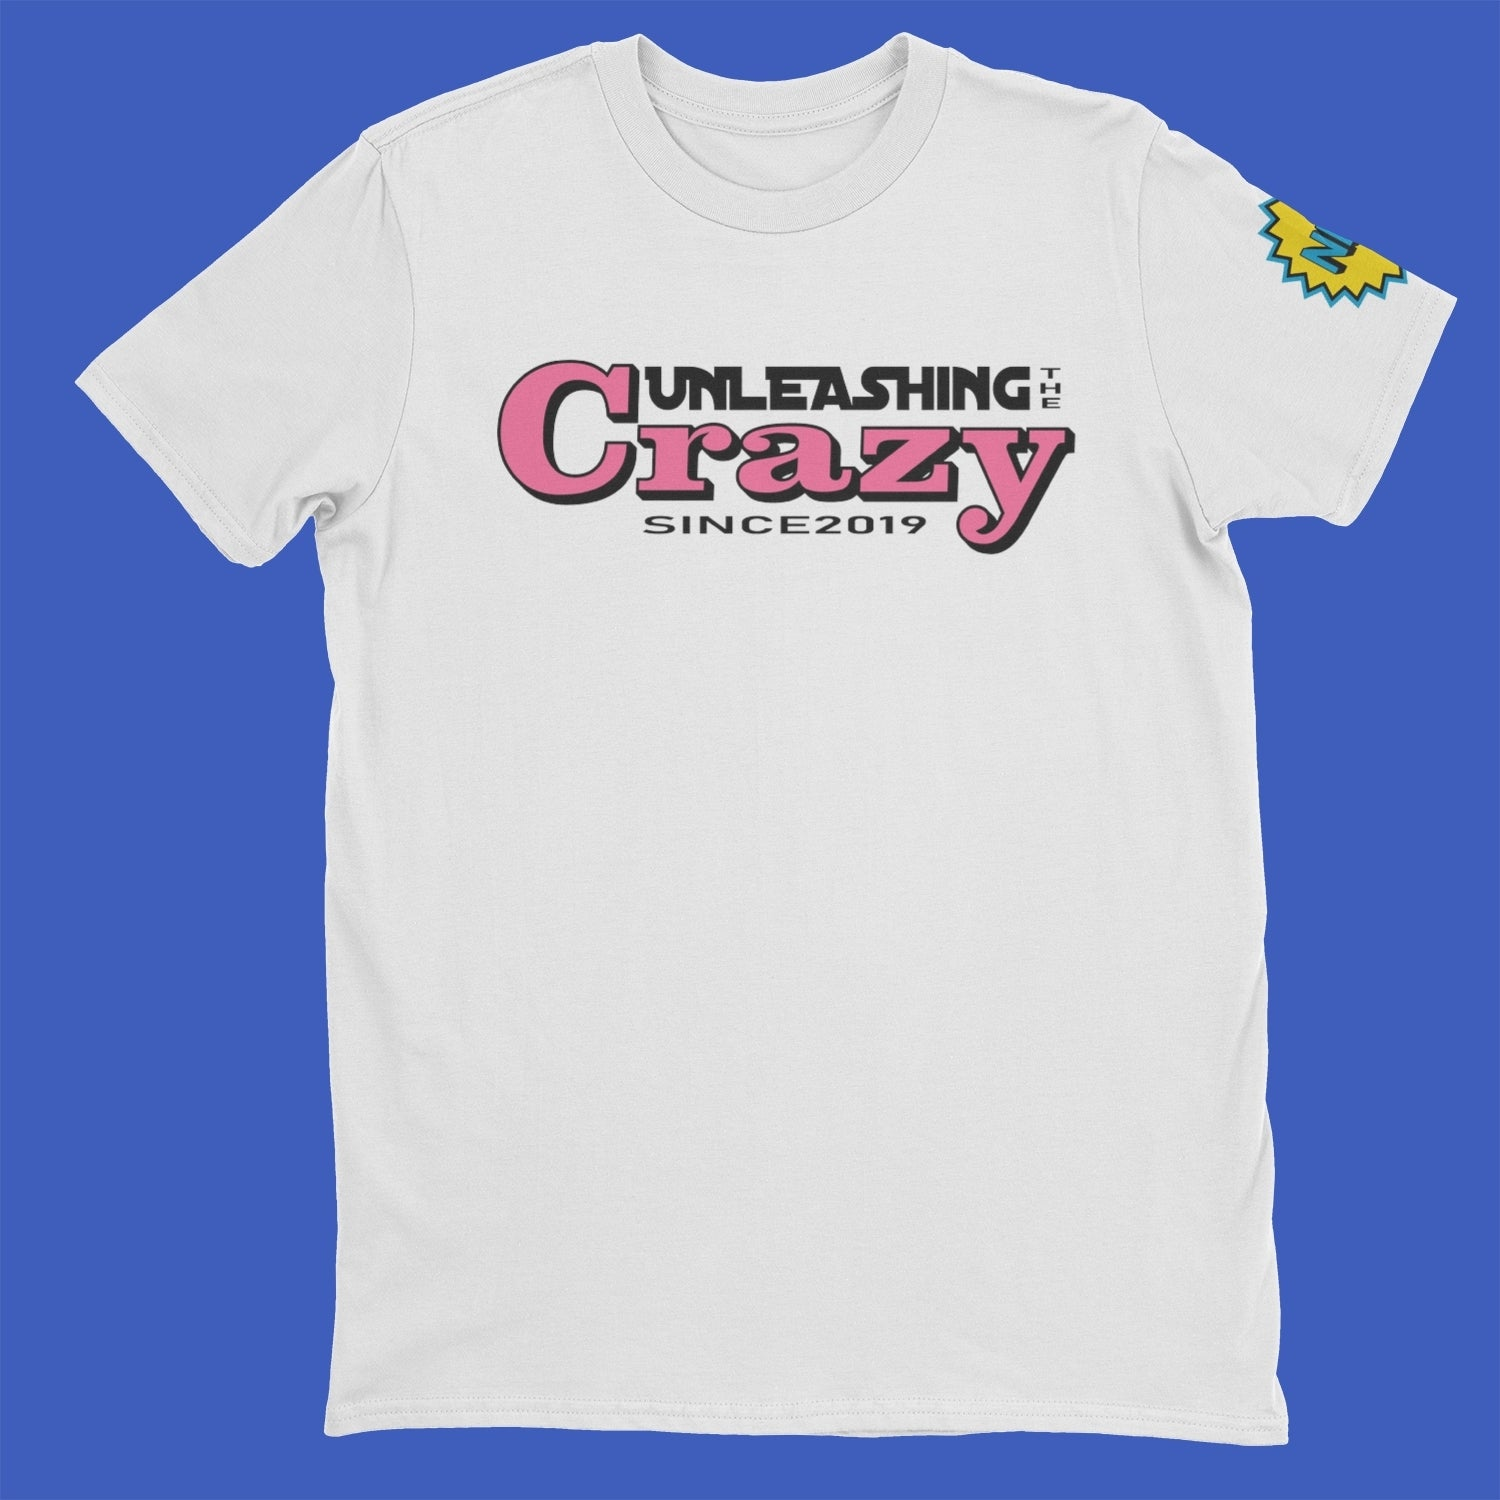 Unleashing the Crazy Members Only T-Shirt - Fuckinuts